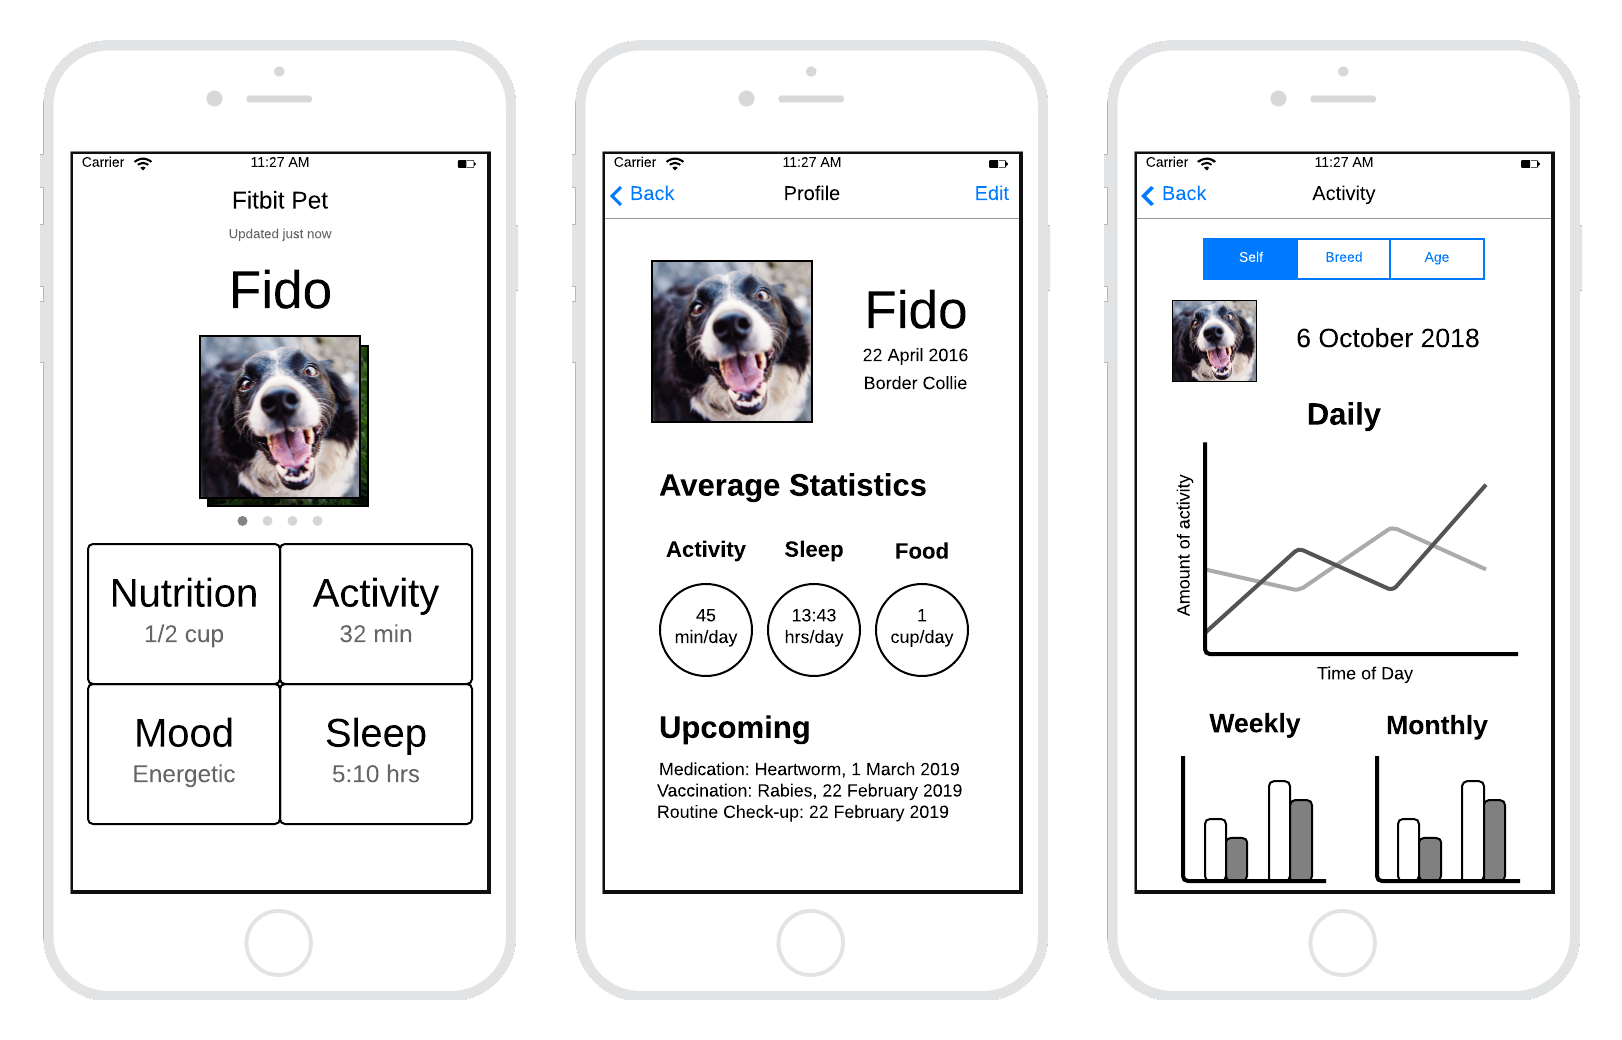 Three low-fidelity prototype screens for the Fitbit Pet app which show the app dashboard, pet profile, and activity summary screens.